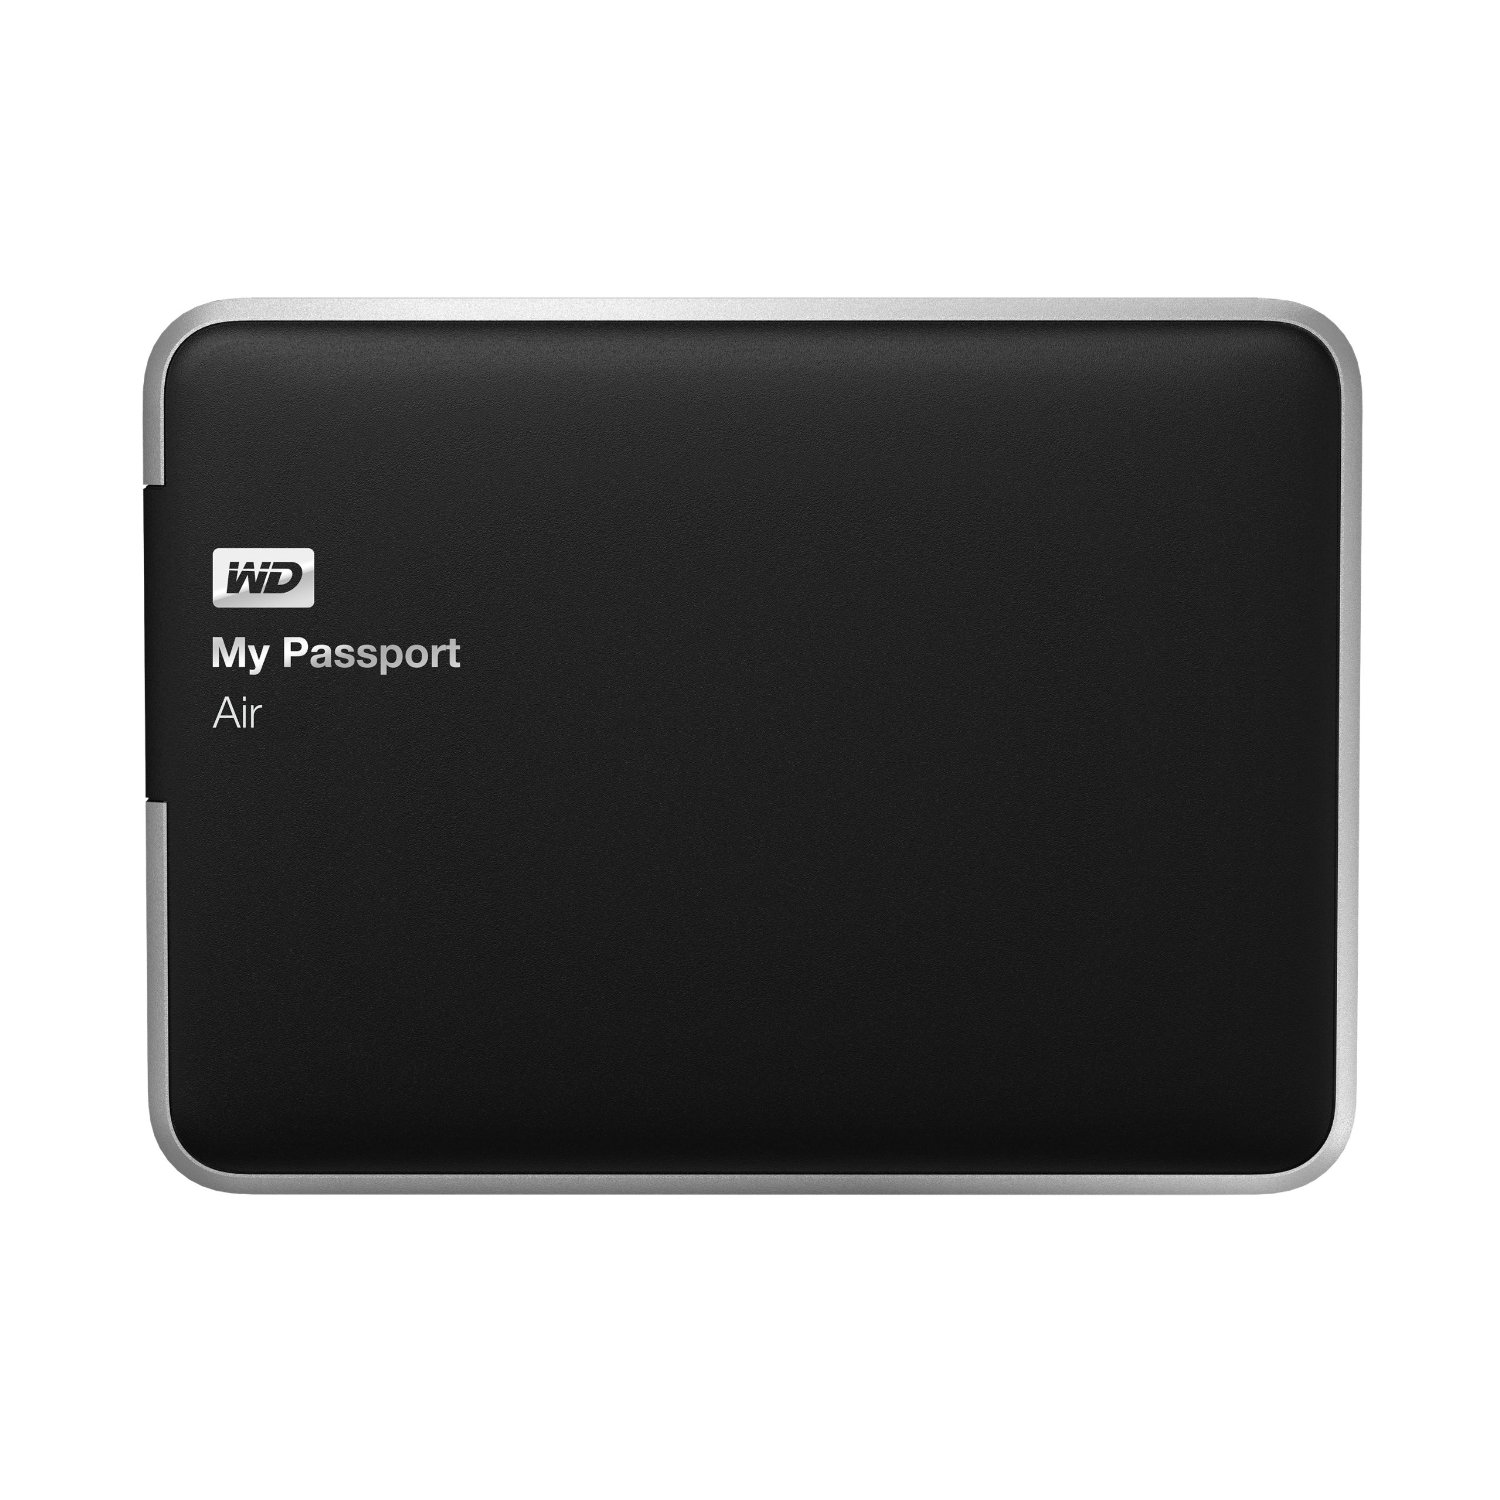 WD My Passport Air Hard-Disk Esterno, 500 GB, USB 3.0 SuperSpeed, Nero